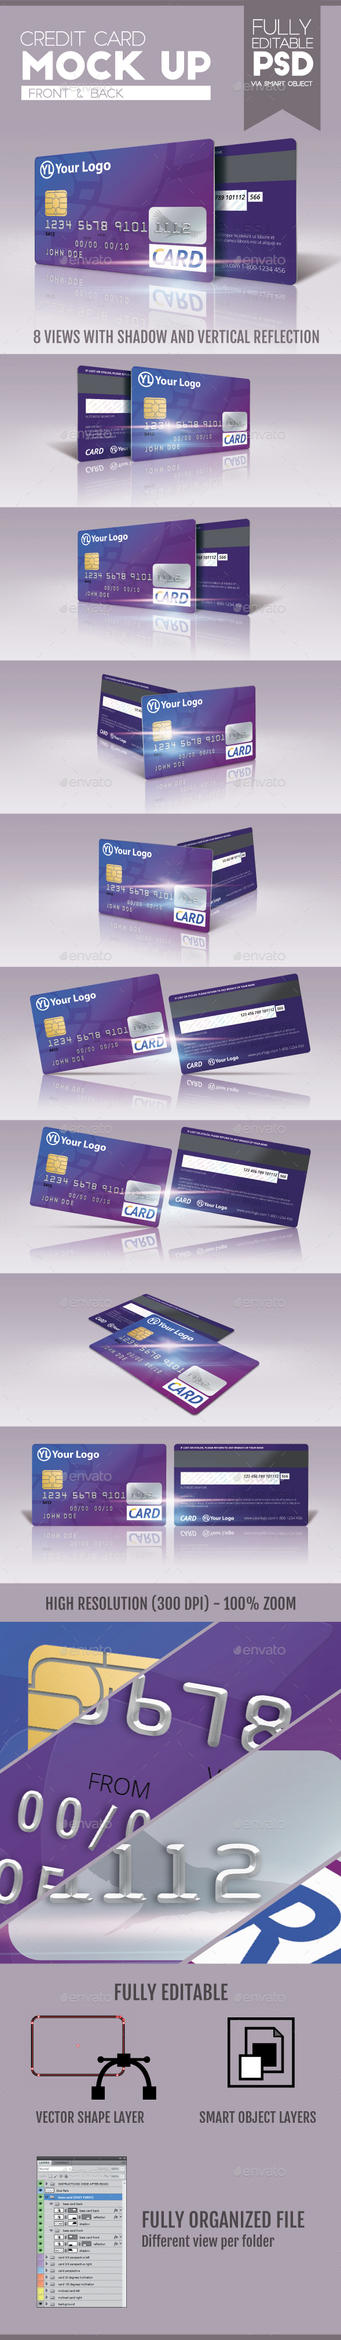 Credit Card Mock Up v2 by doghead